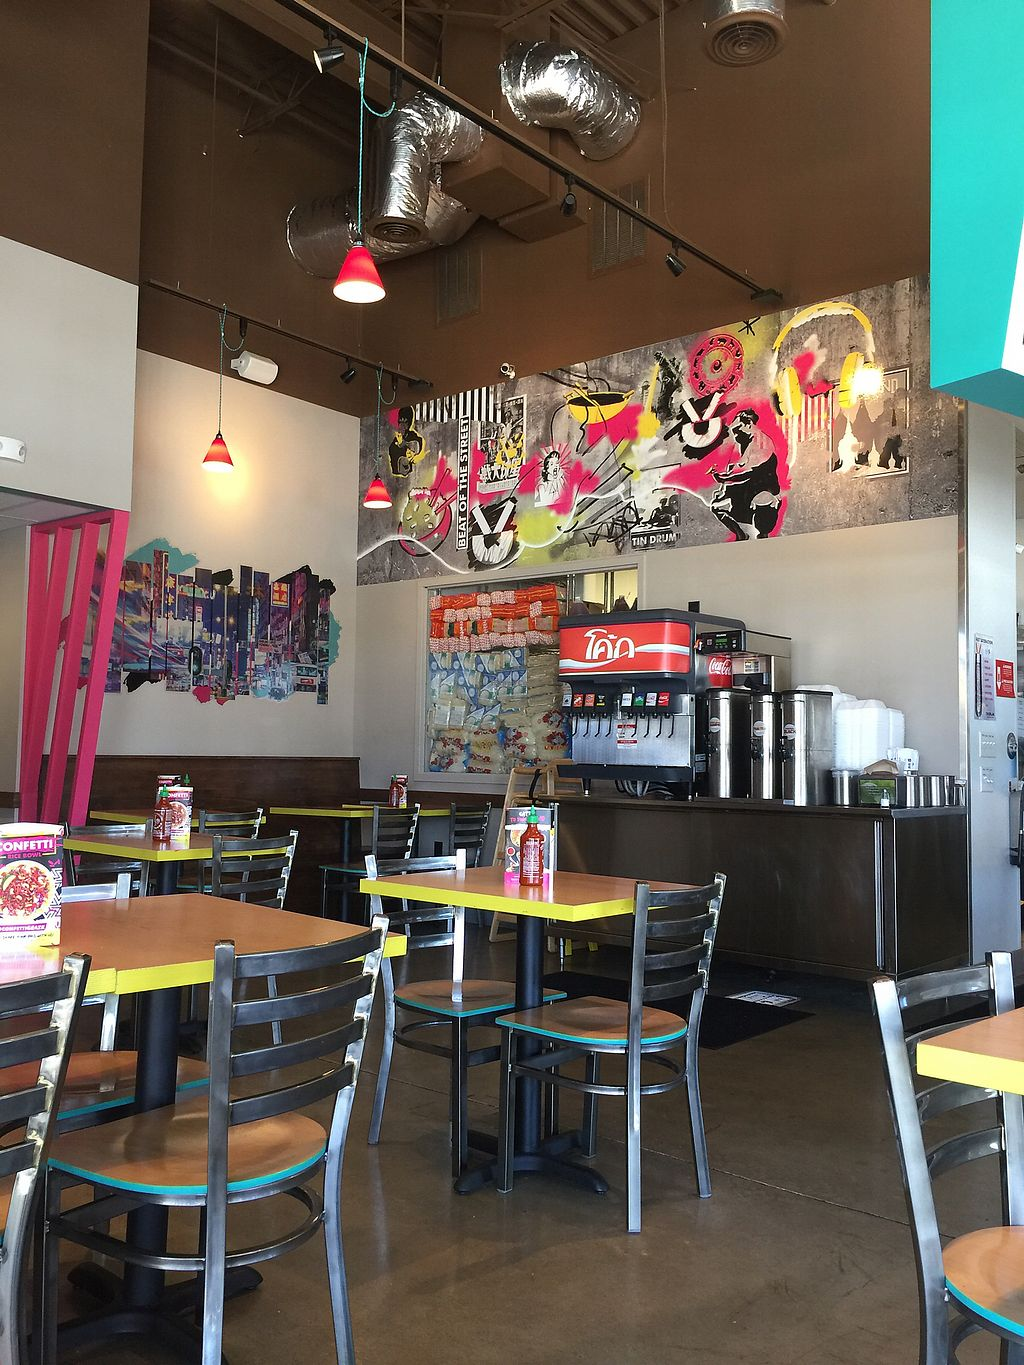 "Photo of Tin Drum Asian Kitchen  by <a href=""/members/profile/andoba"">andoba</a> <br/>Dining area <br/> October 26, 2017  - <a href='/contact/abuse/image/101229/319087'>Report</a>"